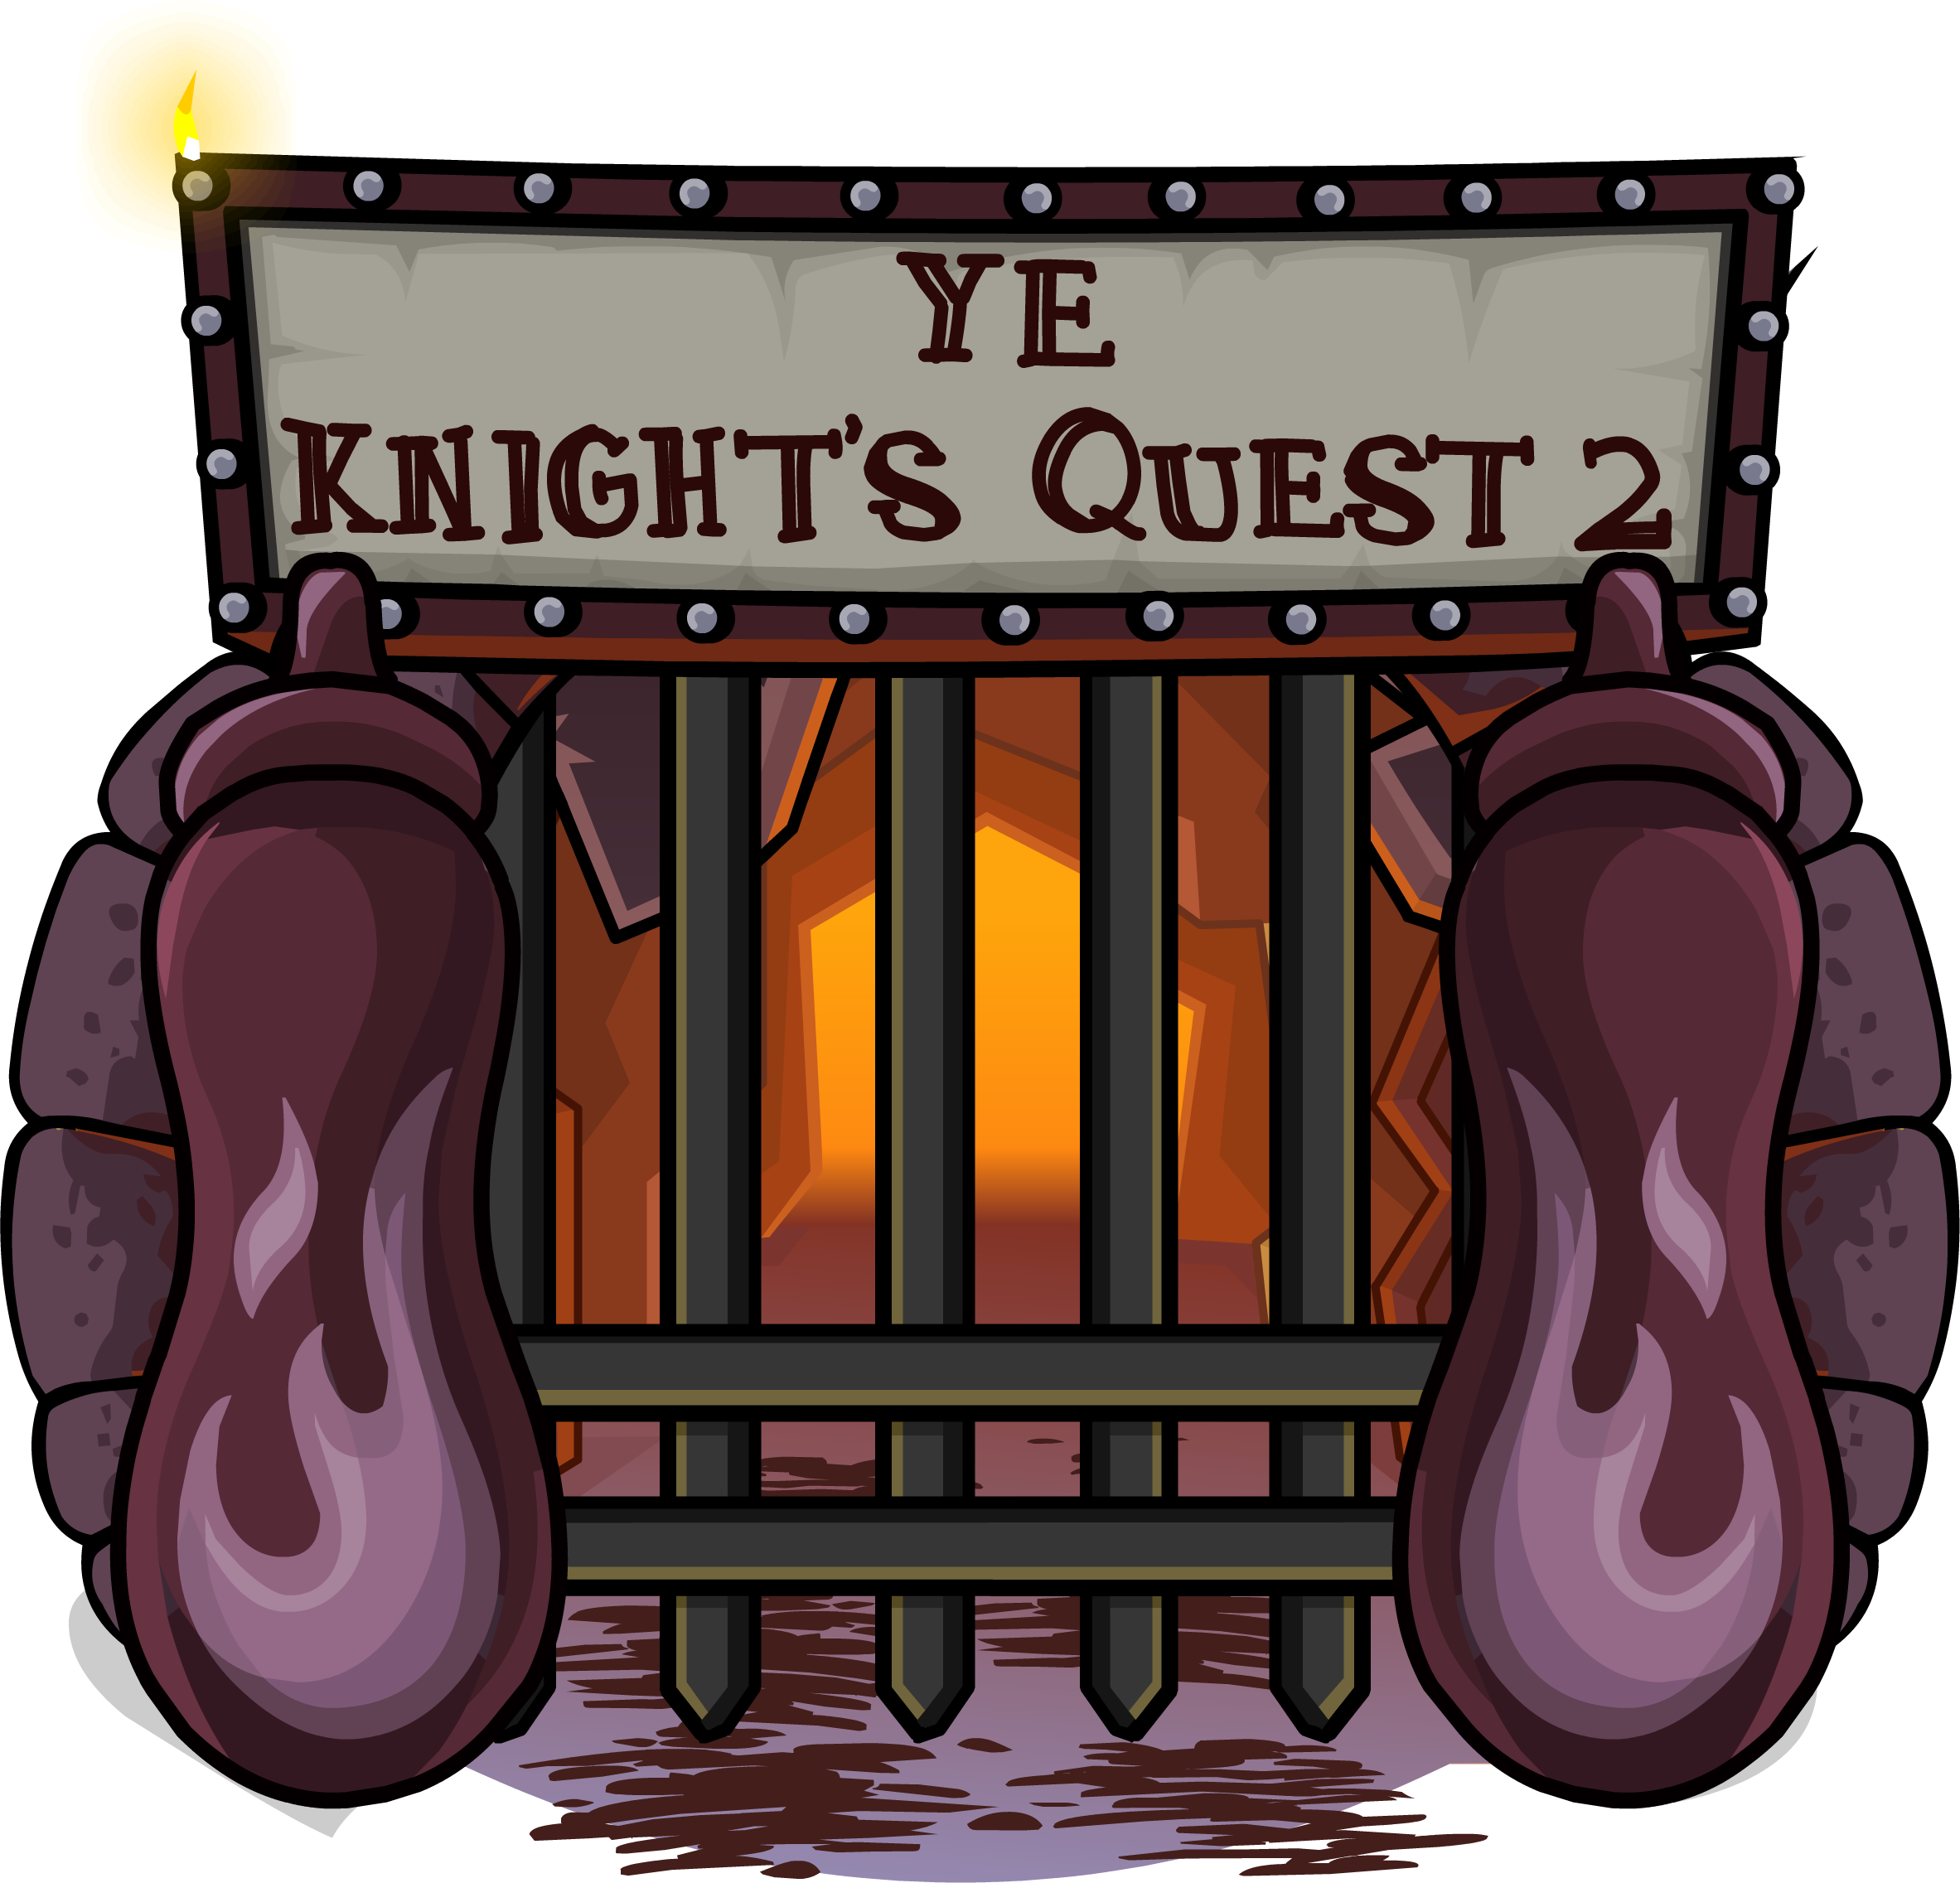 File:YeKnightsQuest2.png